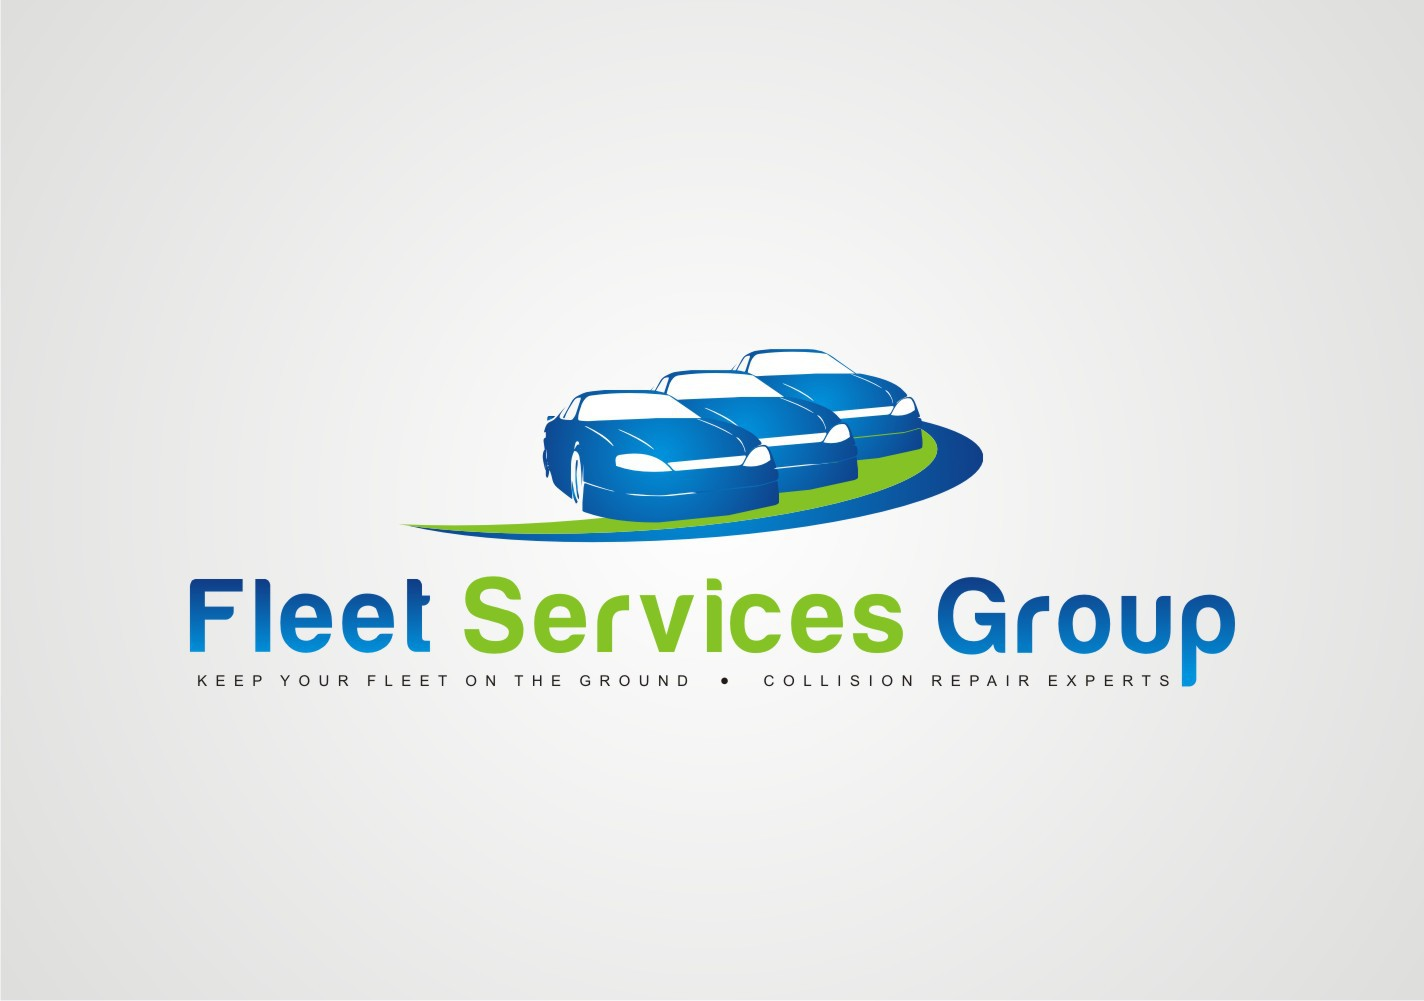 Help Fleet Services Group with a new logo